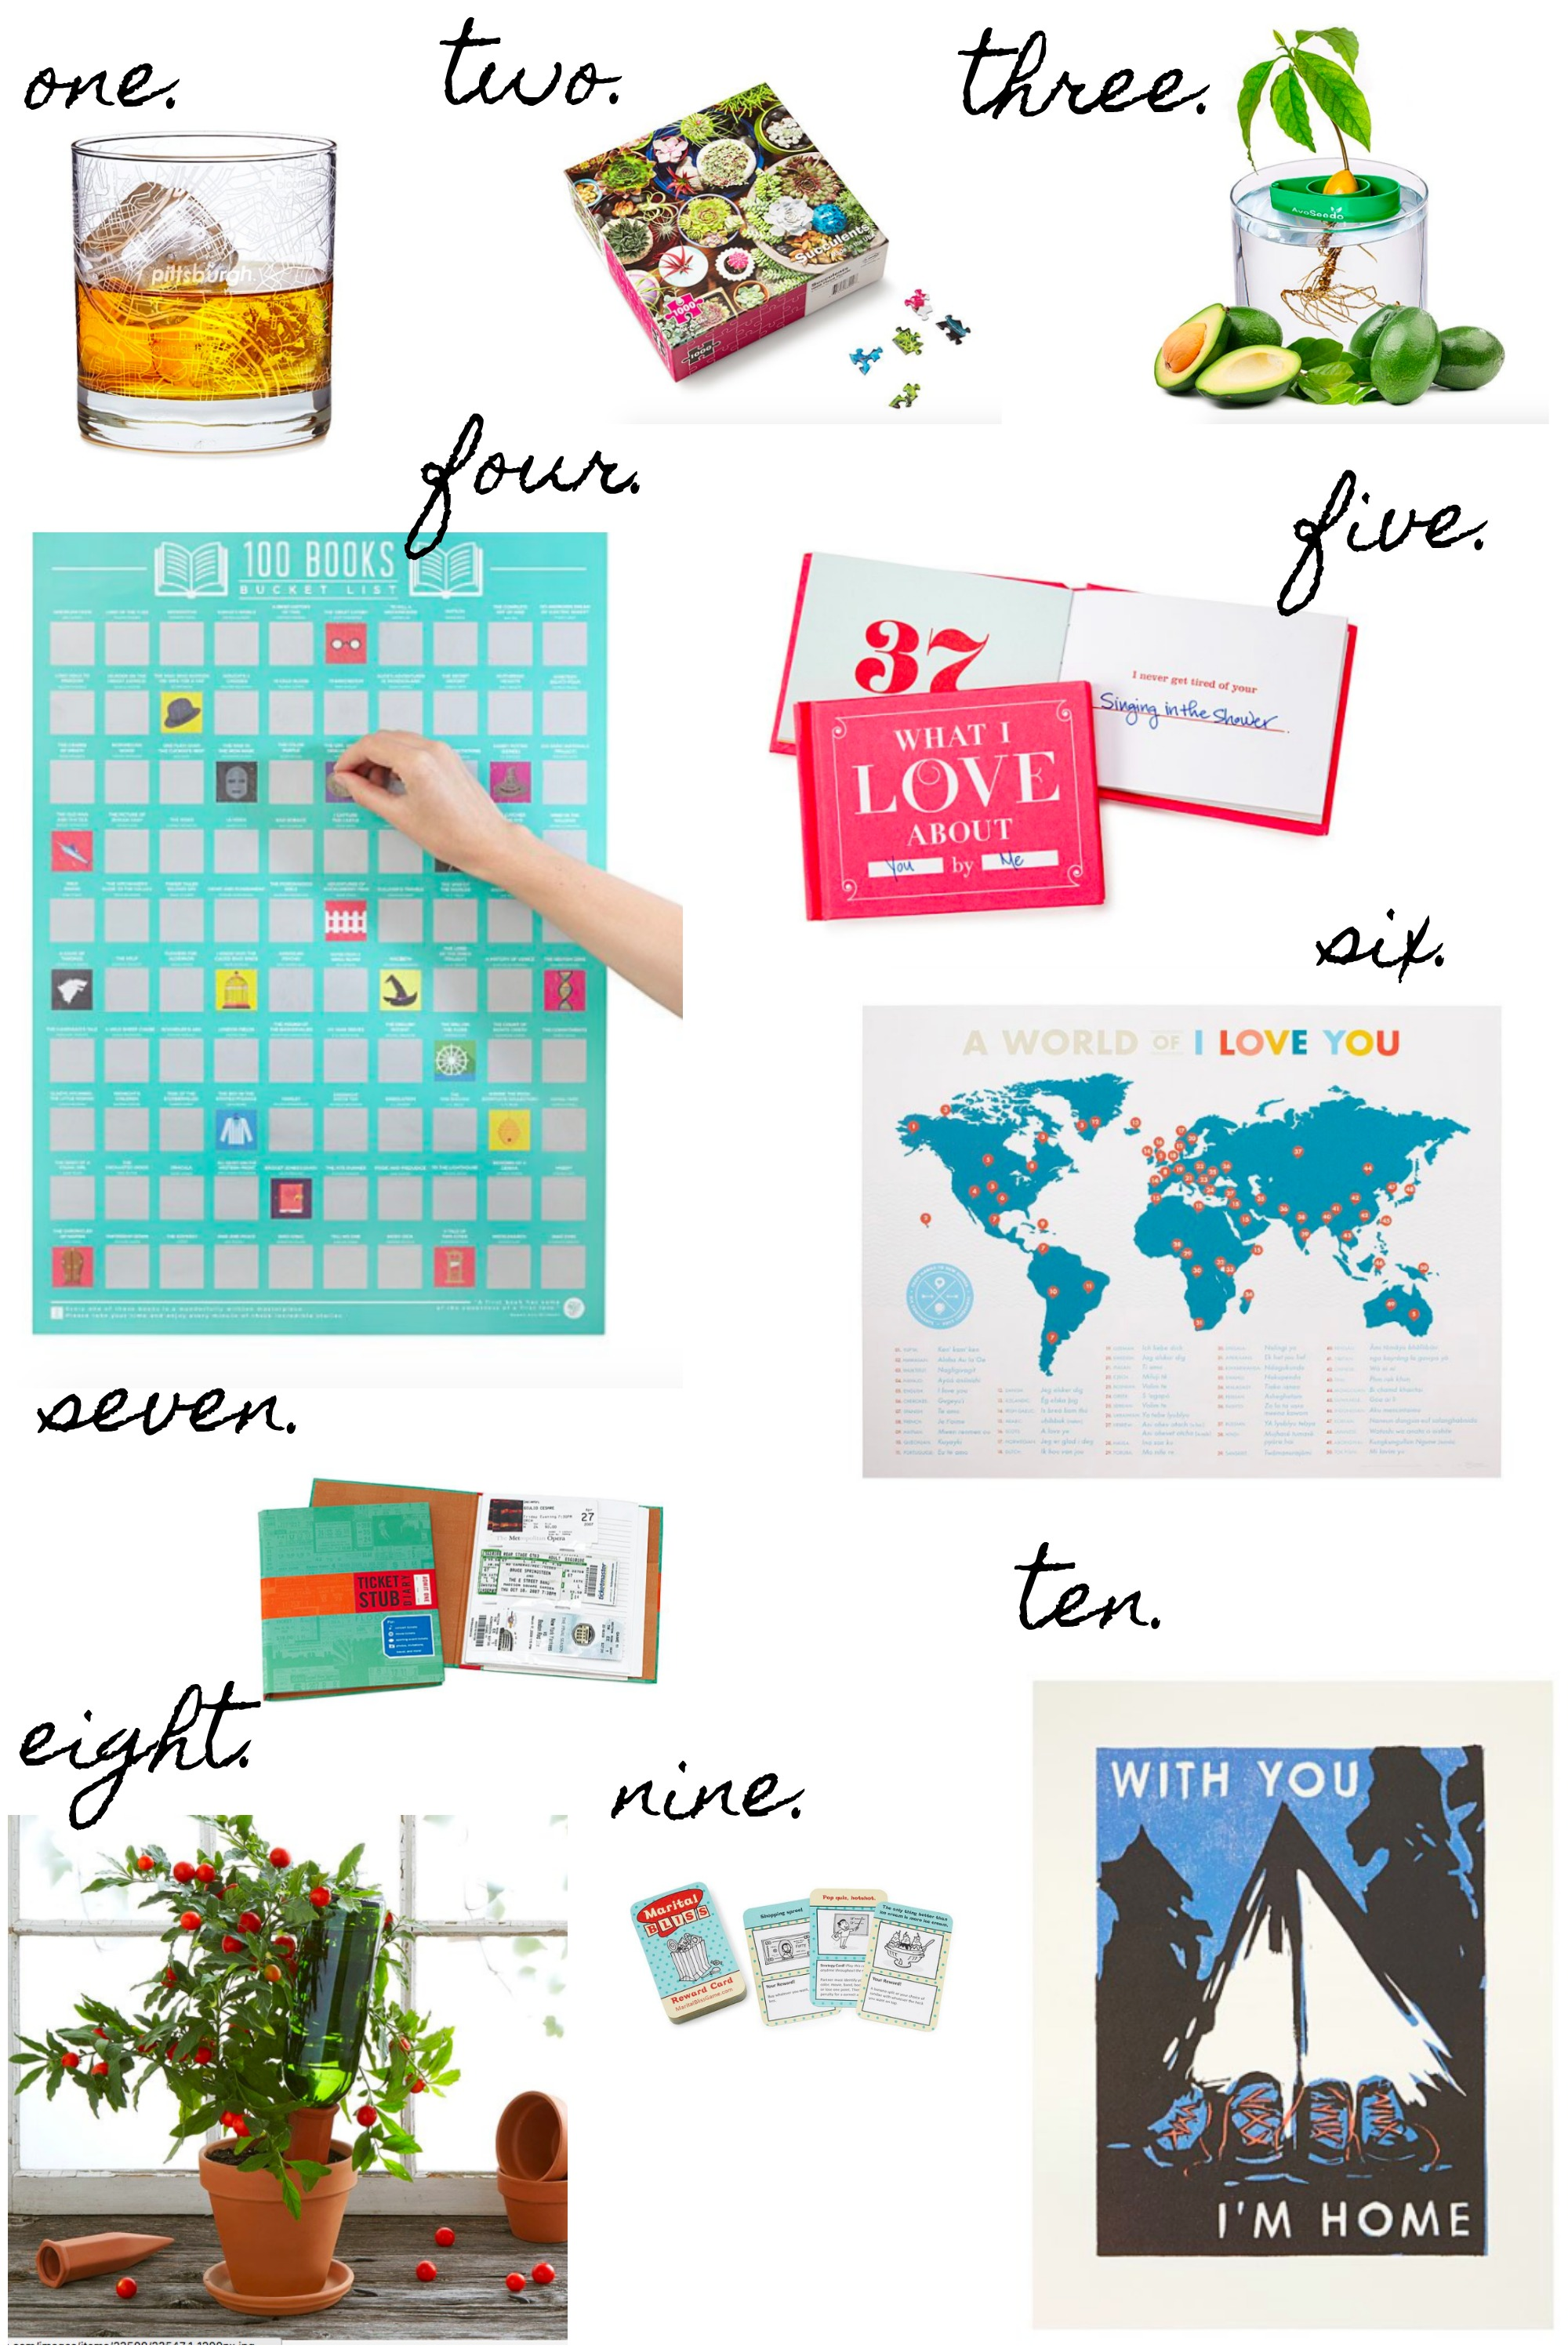 A valentines day gift guide rhyme ribbons uncommongoods 1 city map glass 1027 2 succulents puzzle 1174 3 avocado tree starter kit 1476 4 100 books scratch off poster 1321 5 publicscrutiny Images